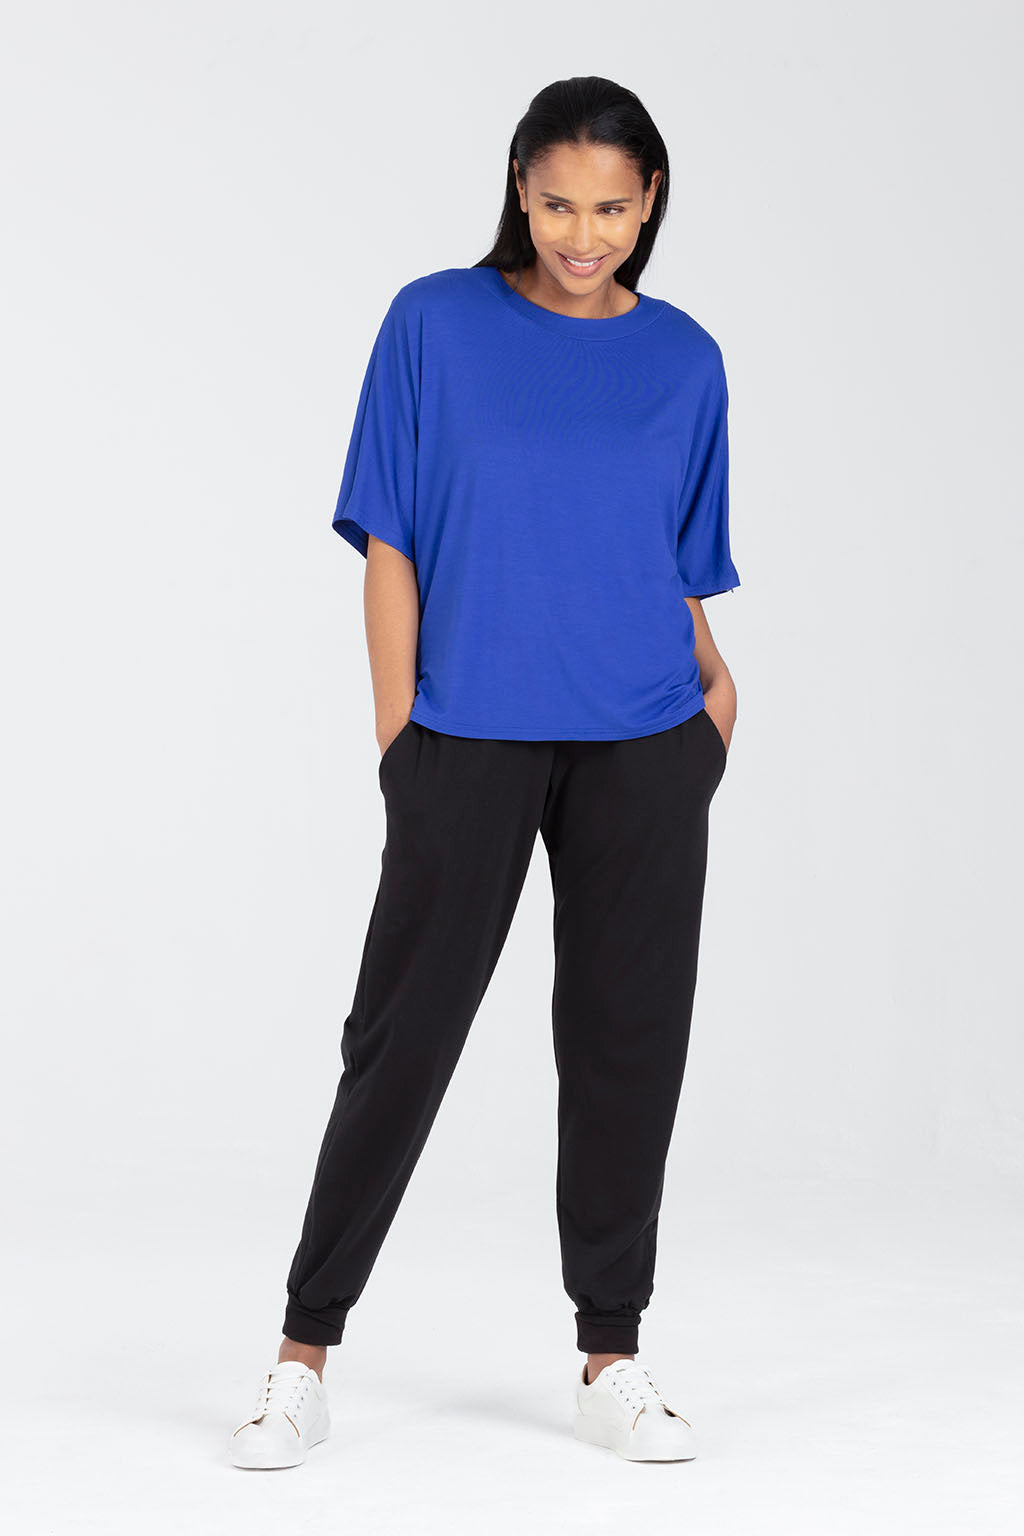 Breastfeeding Top, Nursing T-shirt in Blue - Minerva by Sarka London - Front View